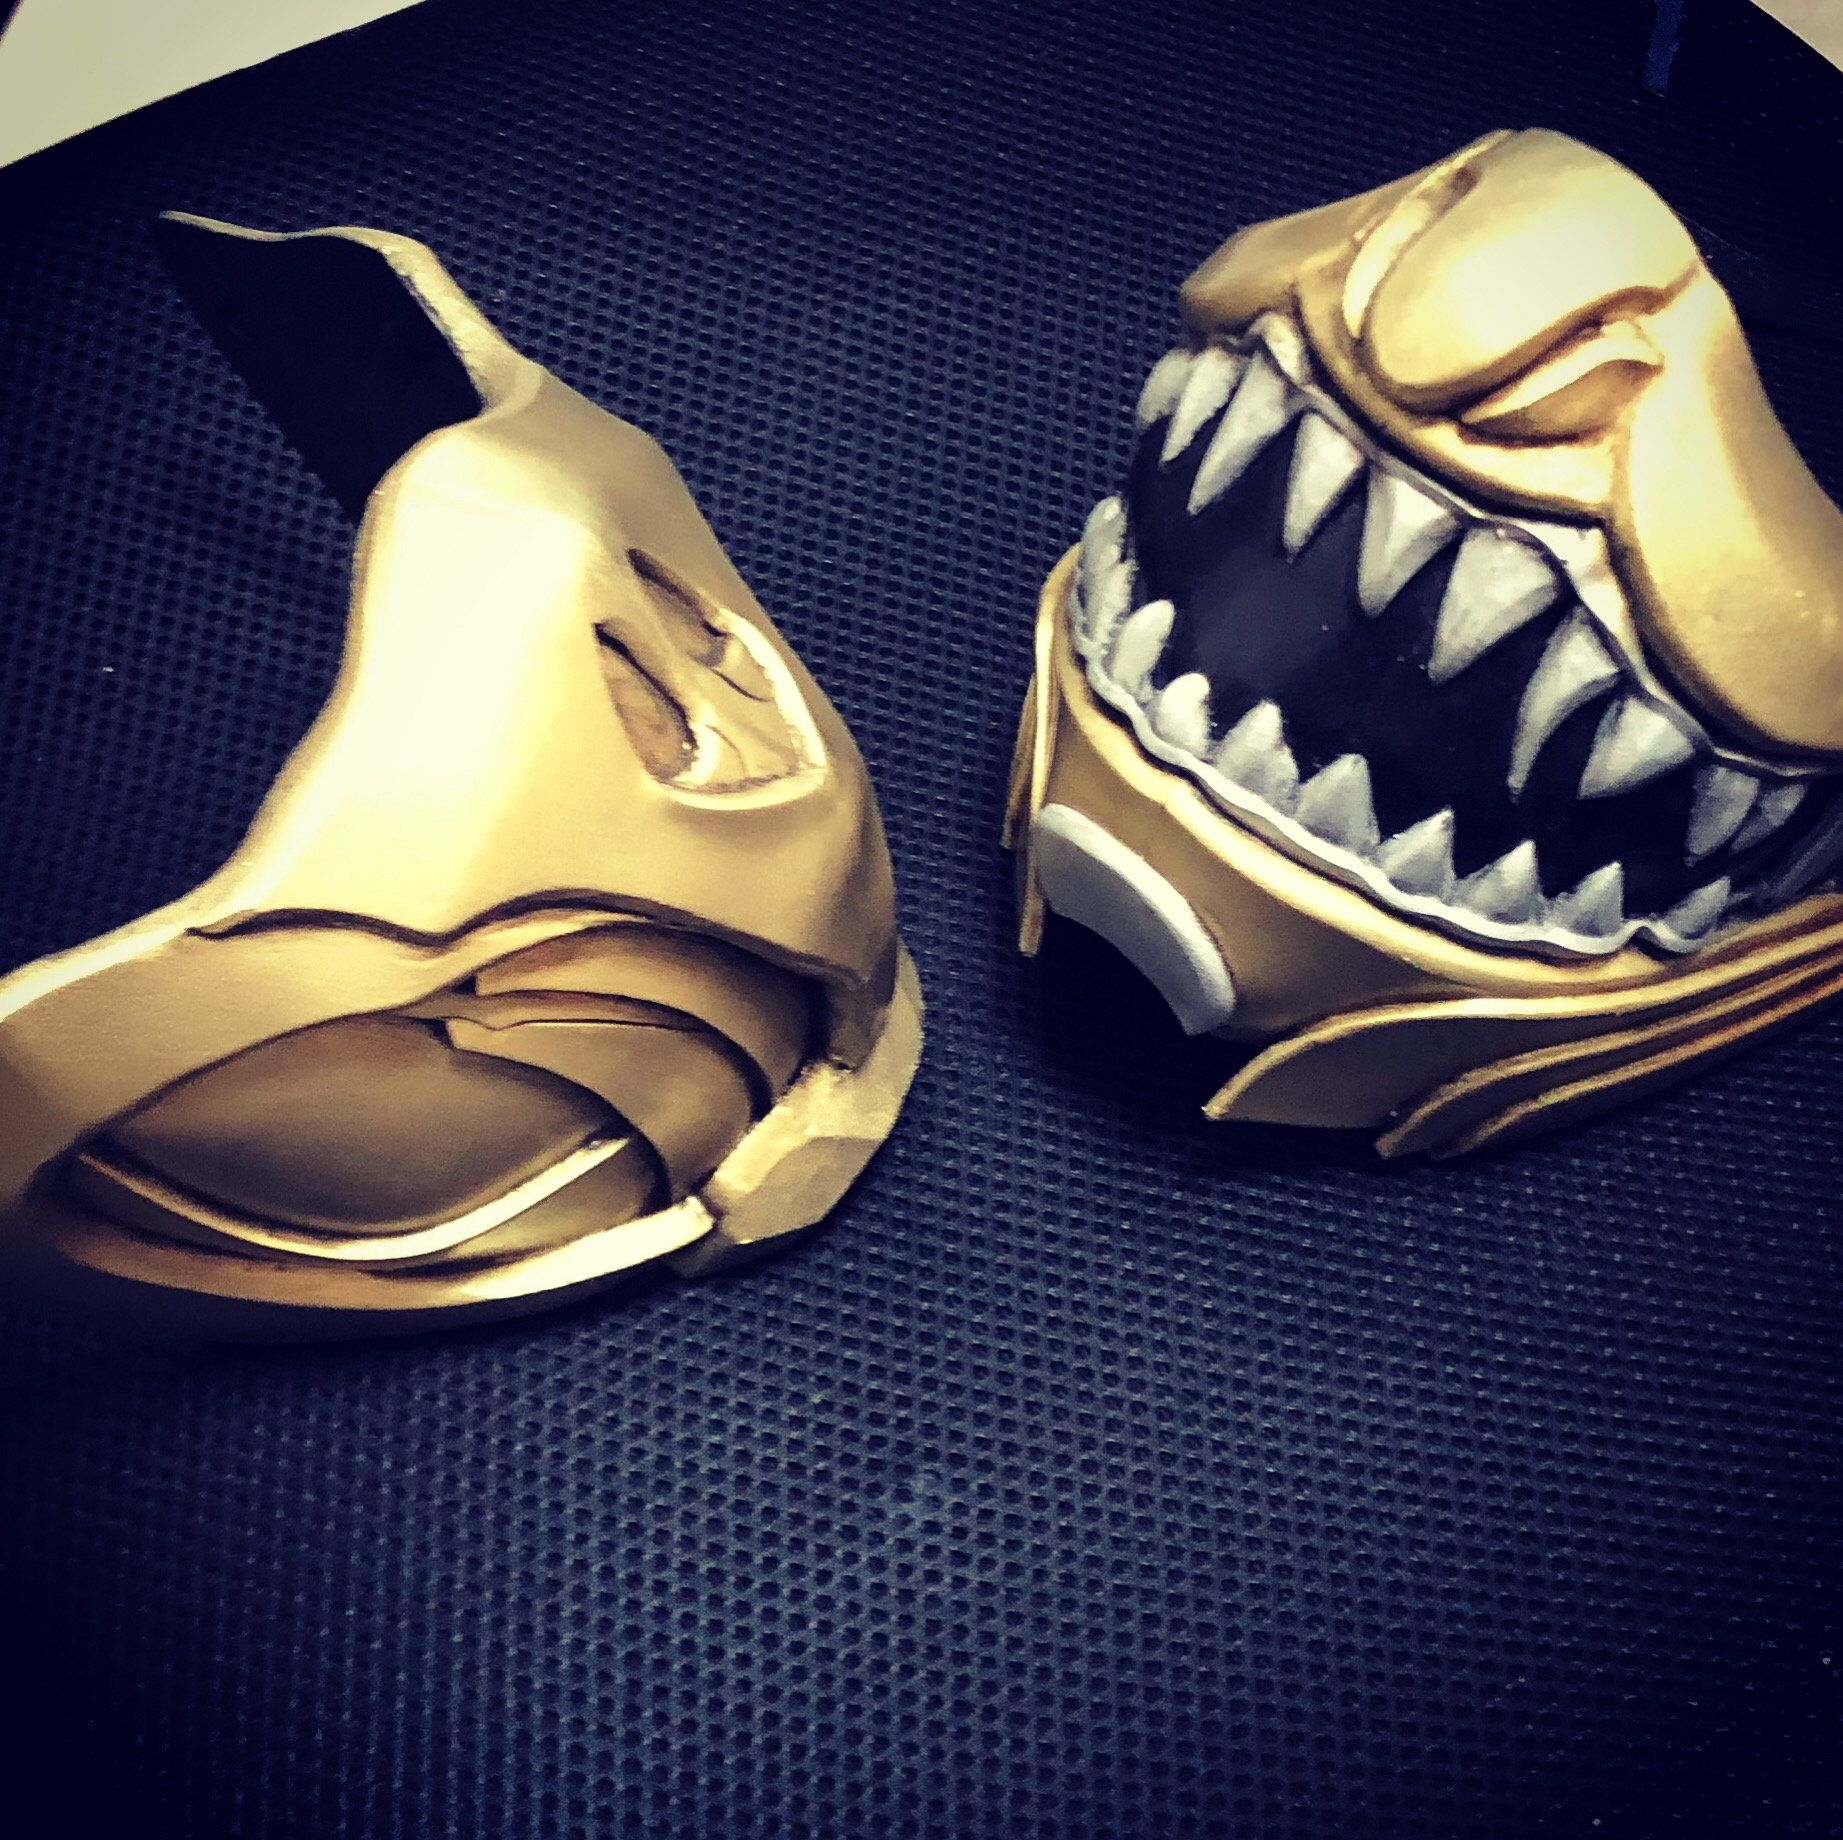 Mk 11 Scorpion Mask Mortal Kombat 11 Scorpion Cosplay Mask Mk 11 Teeth Mask Mk 11 Skull Mask